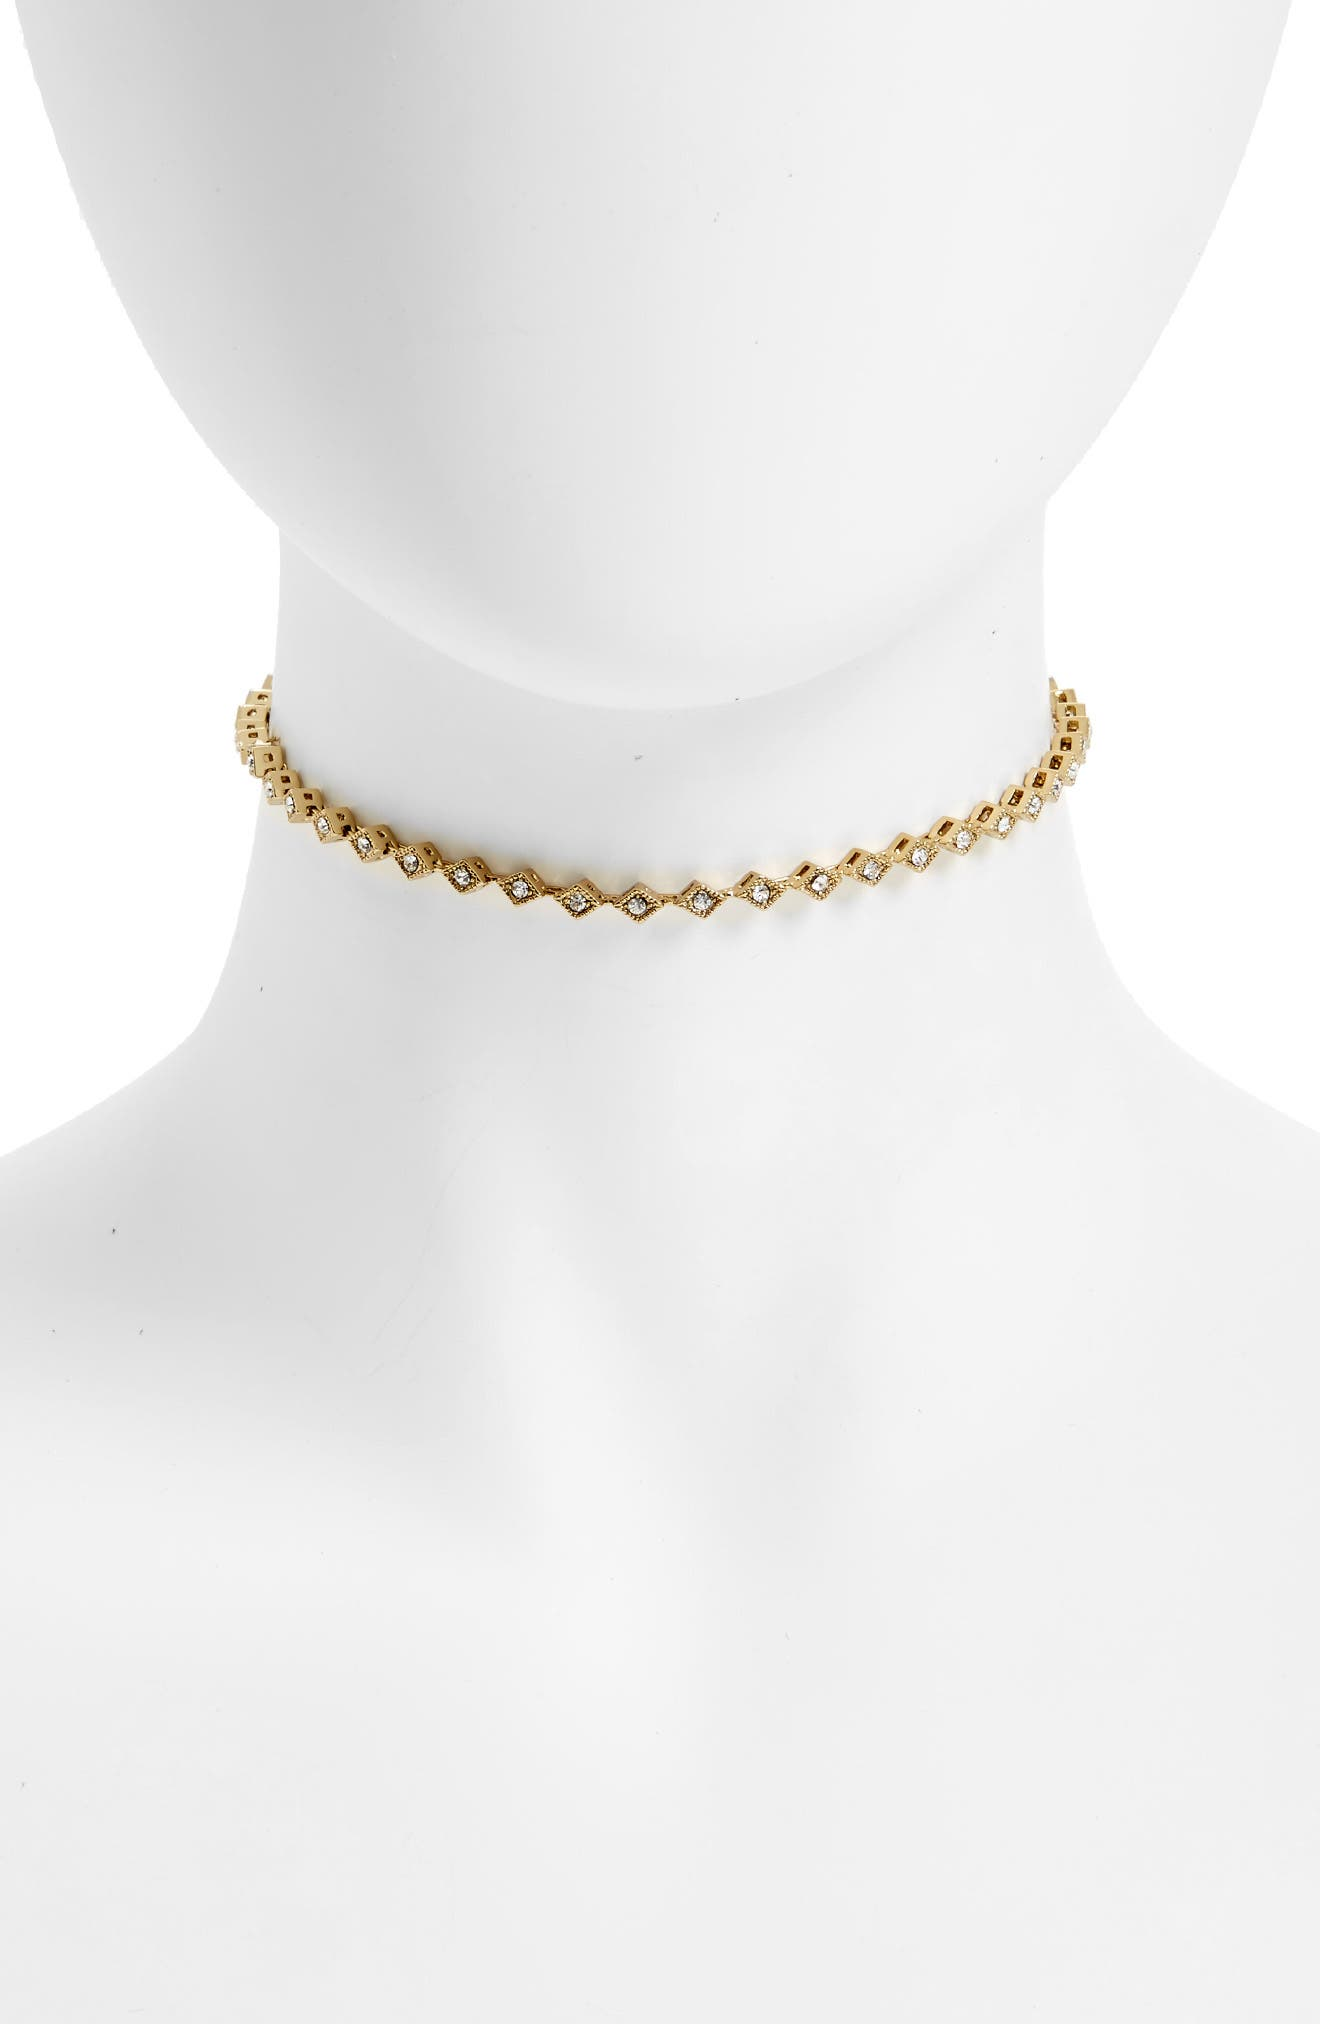 LUV AJ Crystal Cubic Zirconia Choker Necklace in Gold